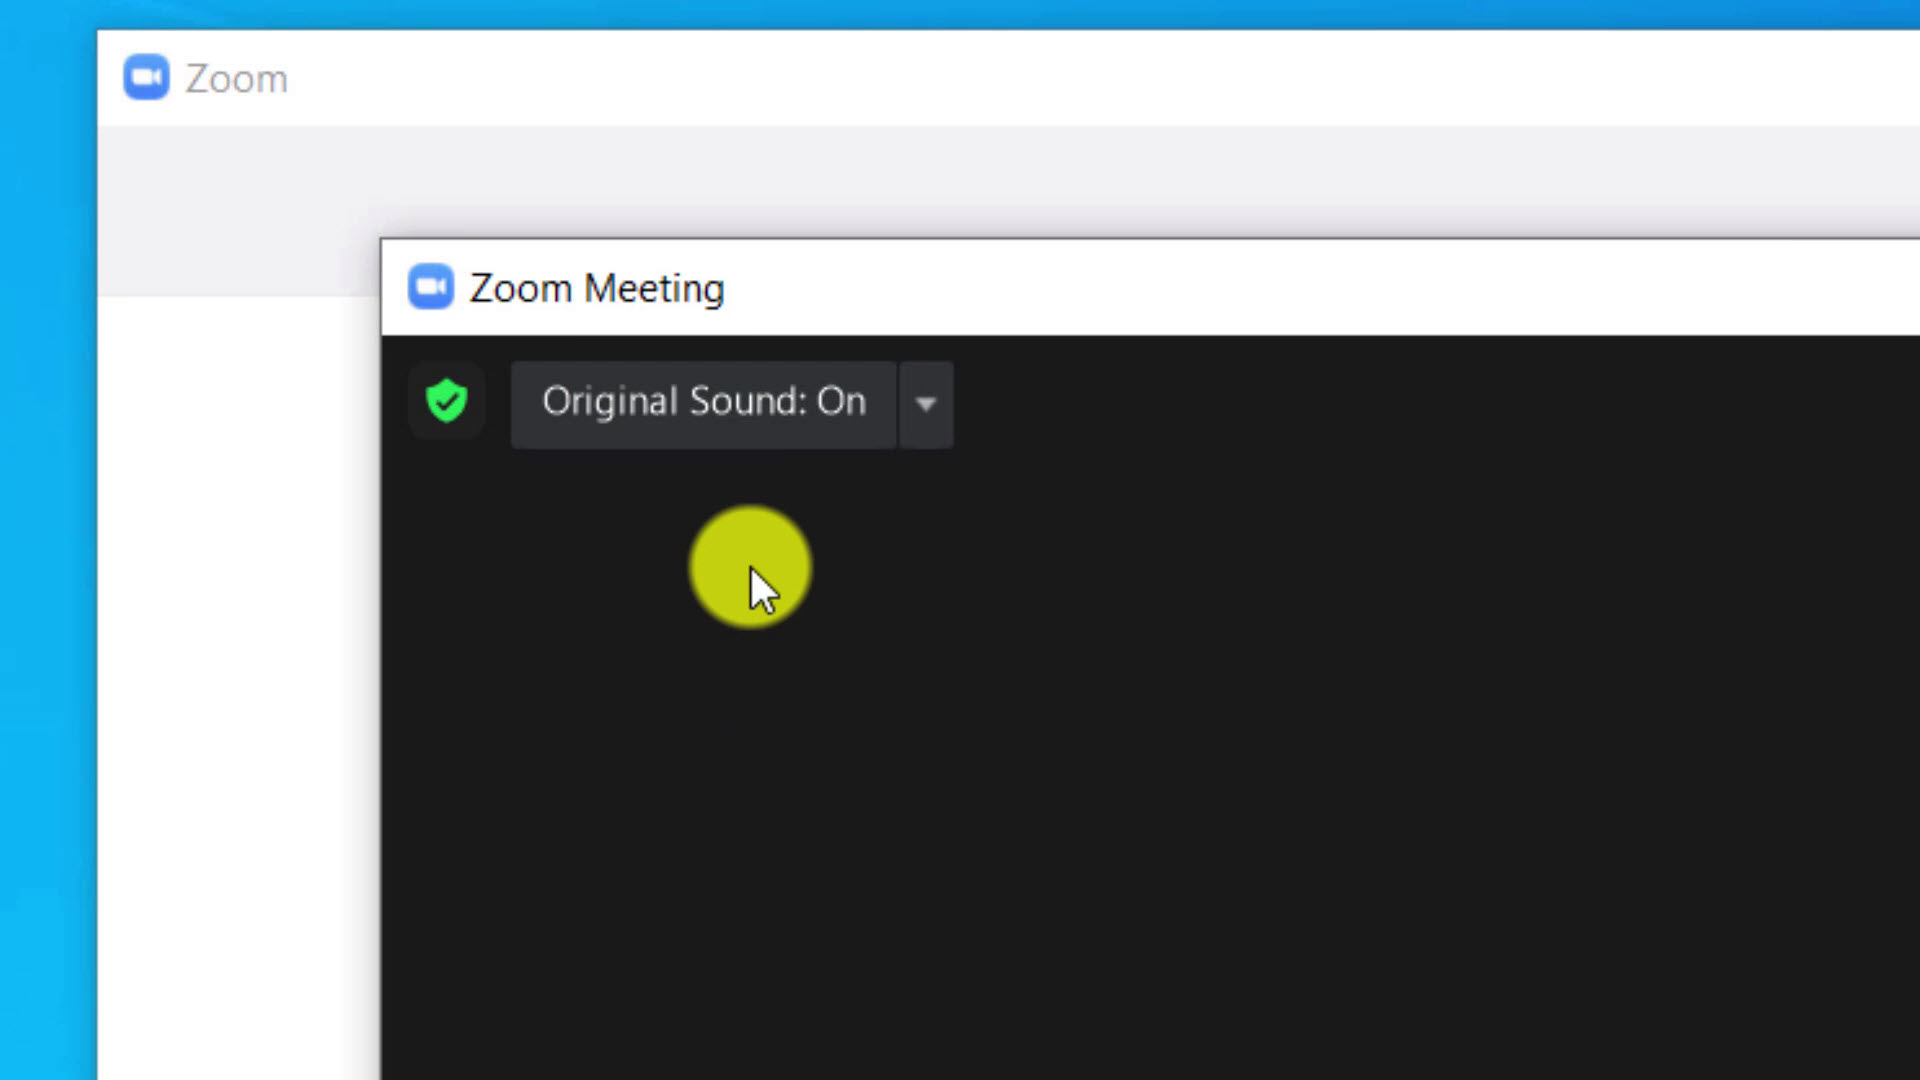 Turn on Original Sound in a Zoom Meeting